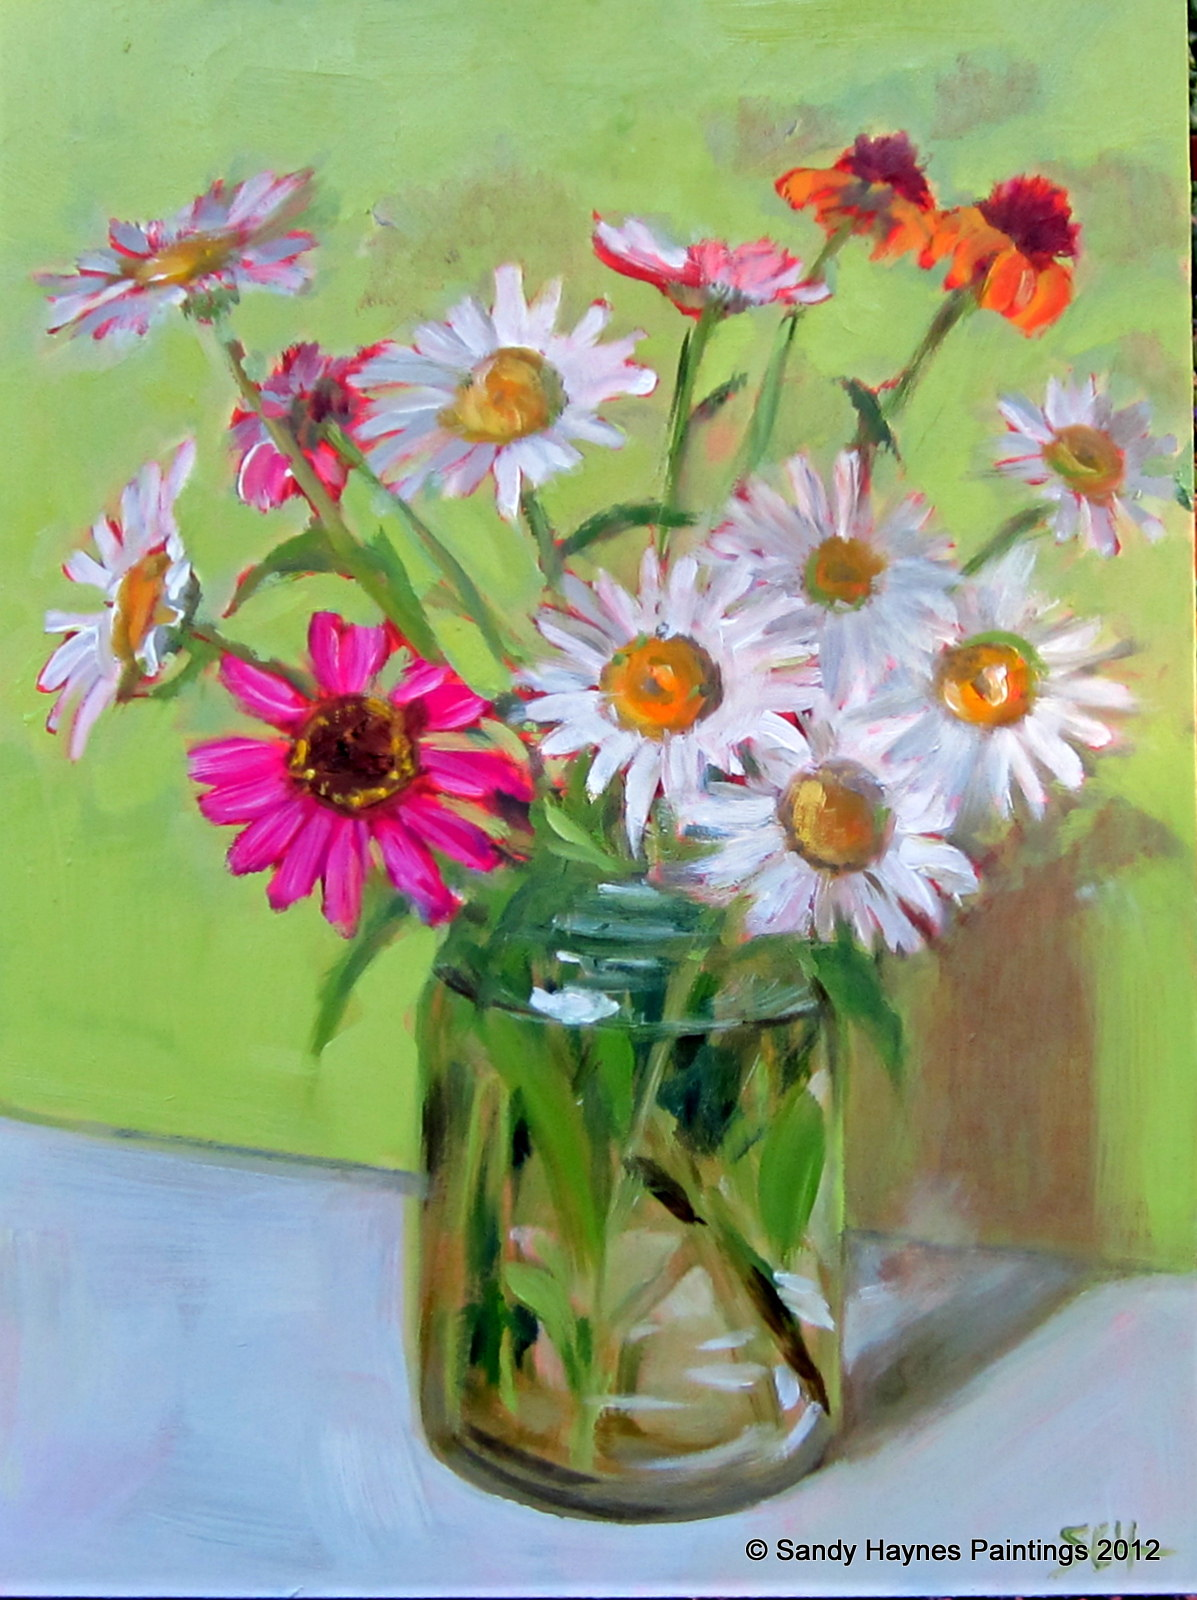 Sandy Graeser Haynes Paintings Last Of The Daisies